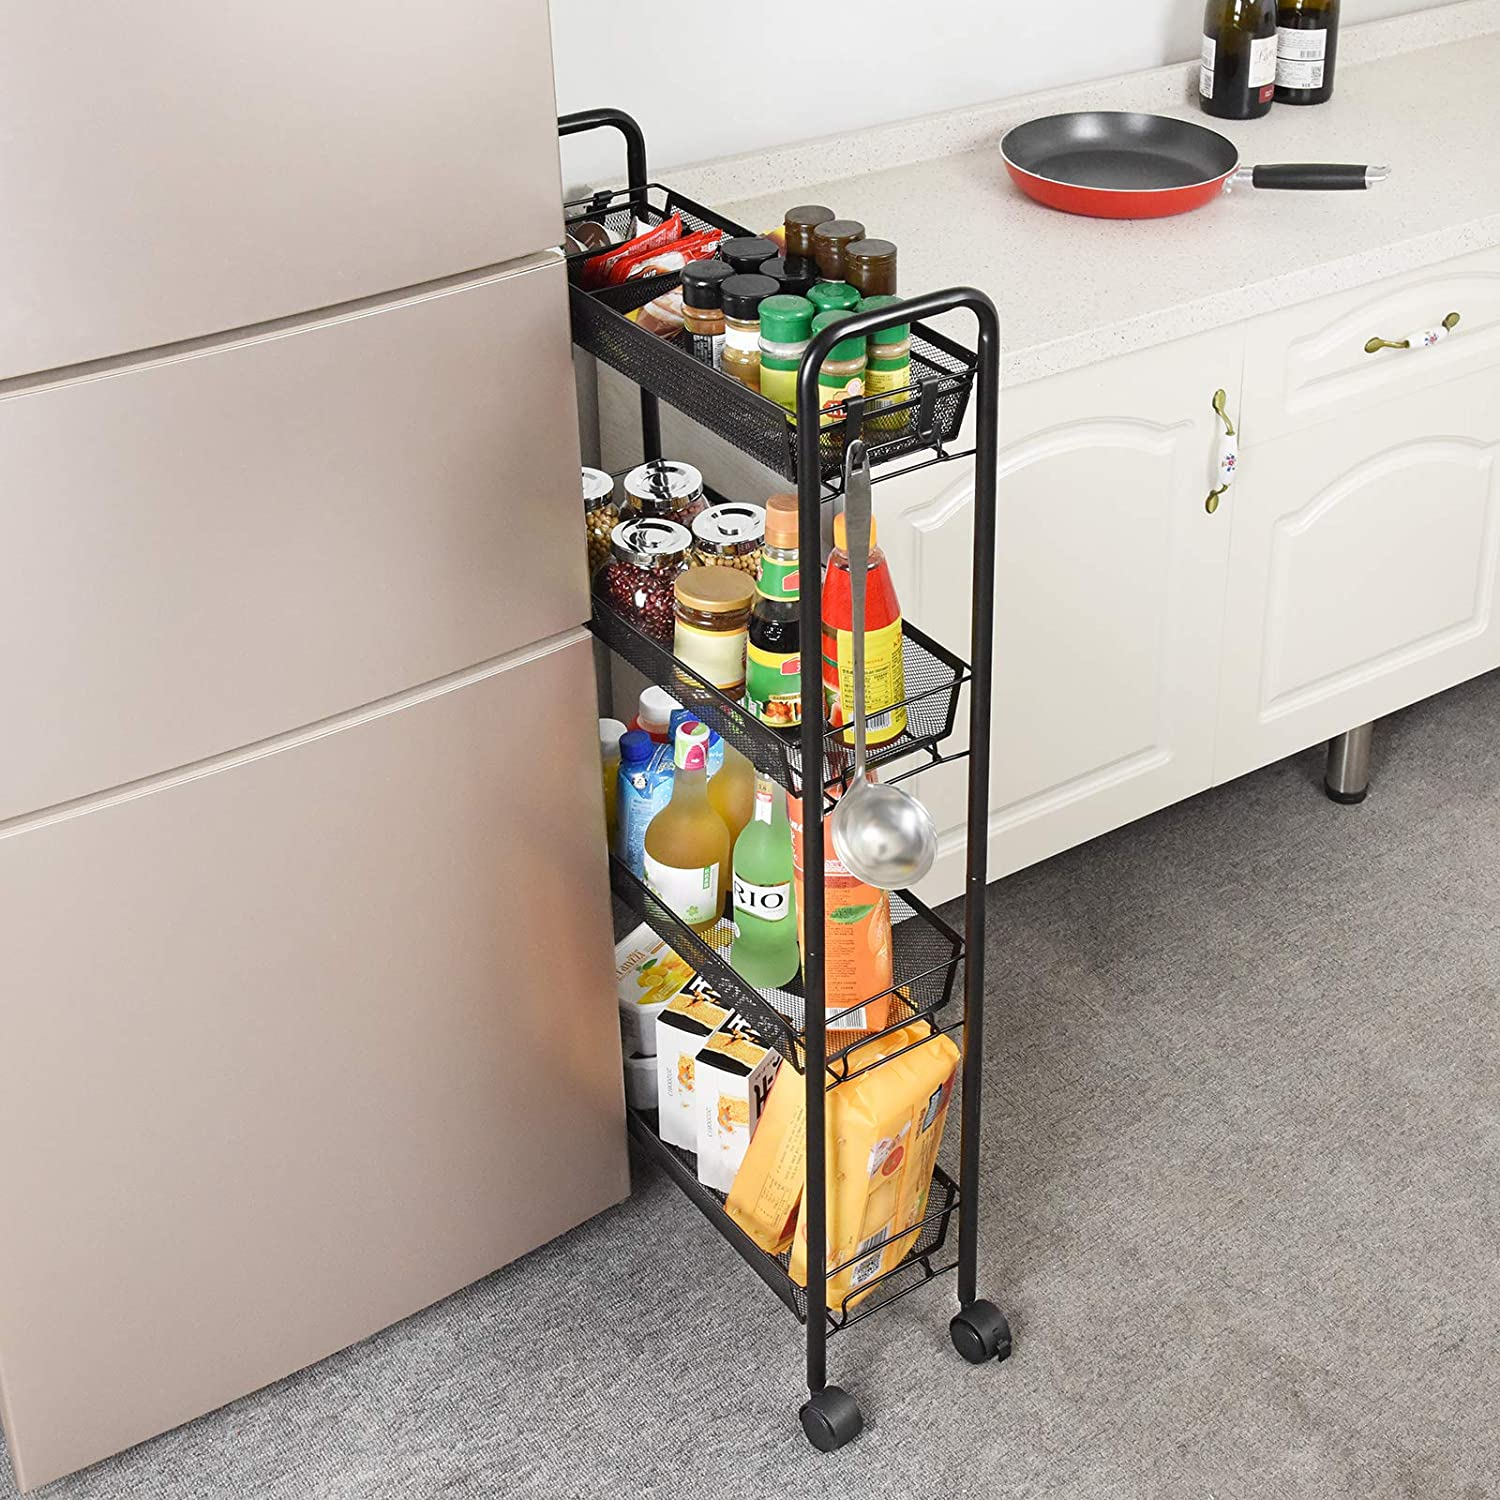 Space ILFALZT Kitchen Utility Cart 3-Tier Narrow Metal Rolling Trolley with 3 Organizer Tray//4 Side Hooks Saving Slim Storage Cart with Lockable Wheels for Narrow Place